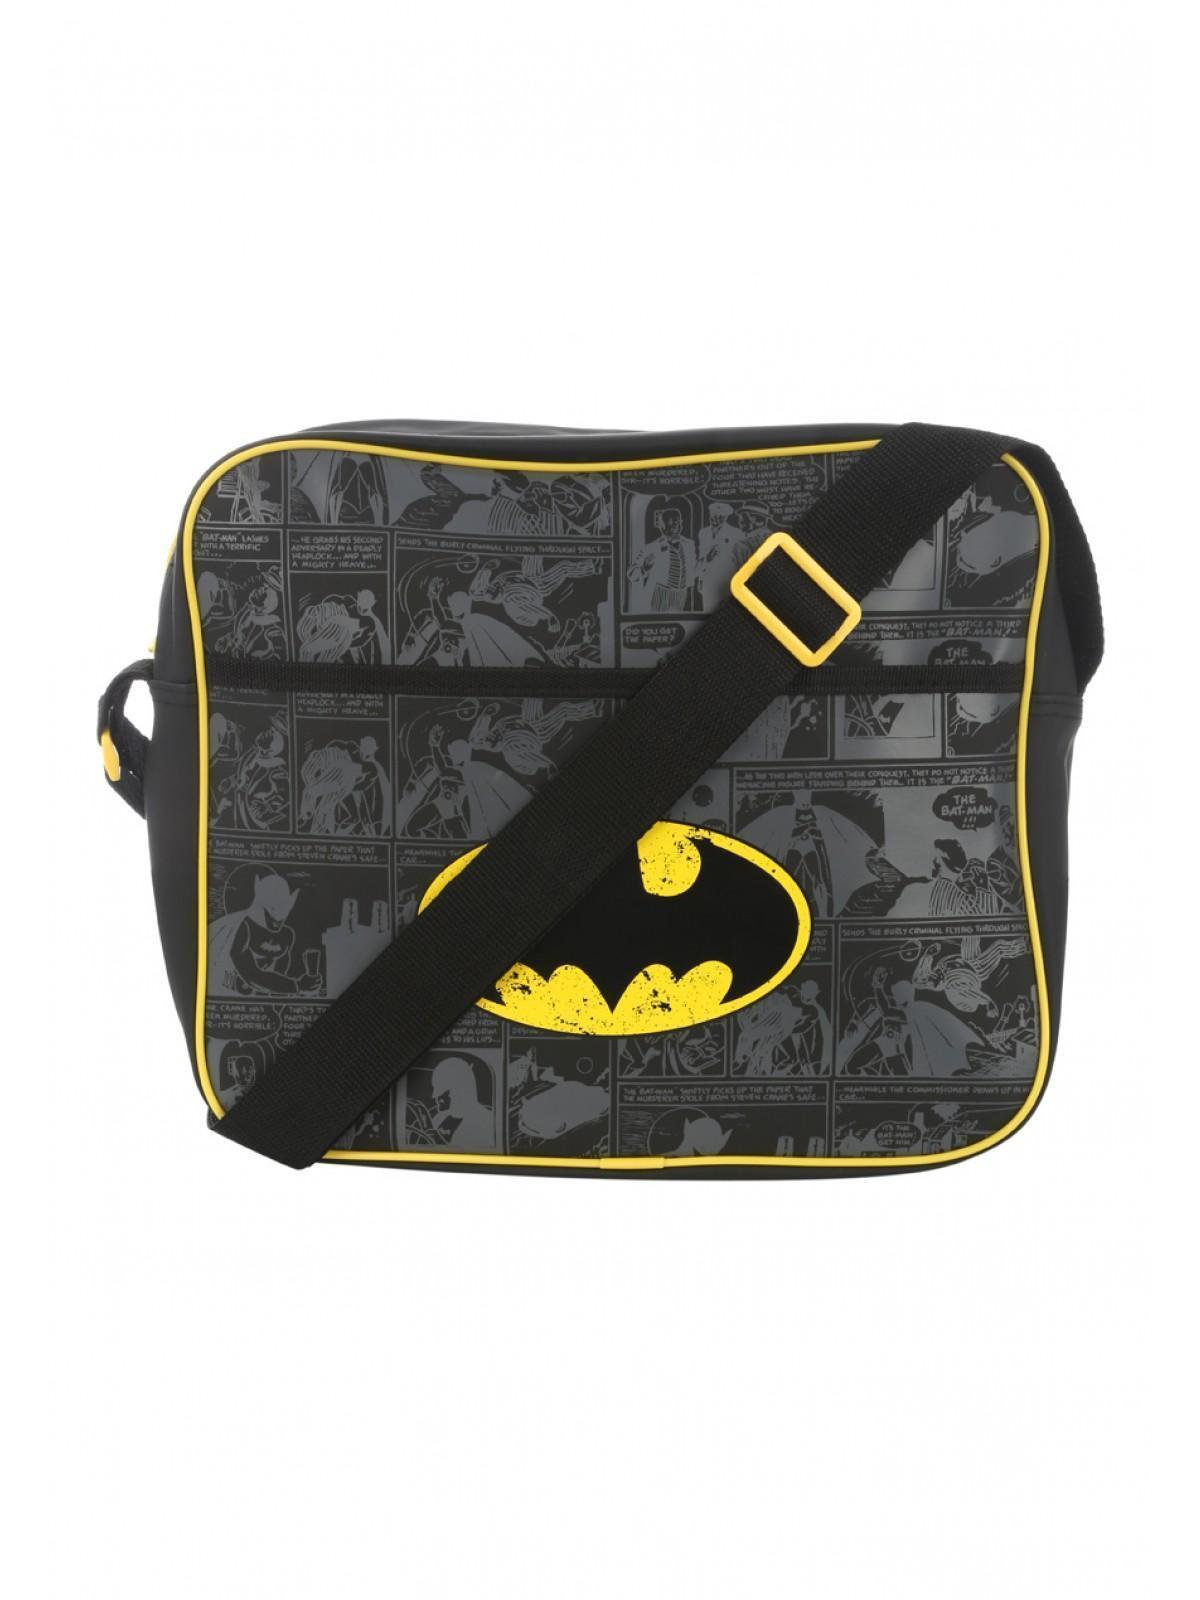 Boys Batman Messenger Bag | Peacocks